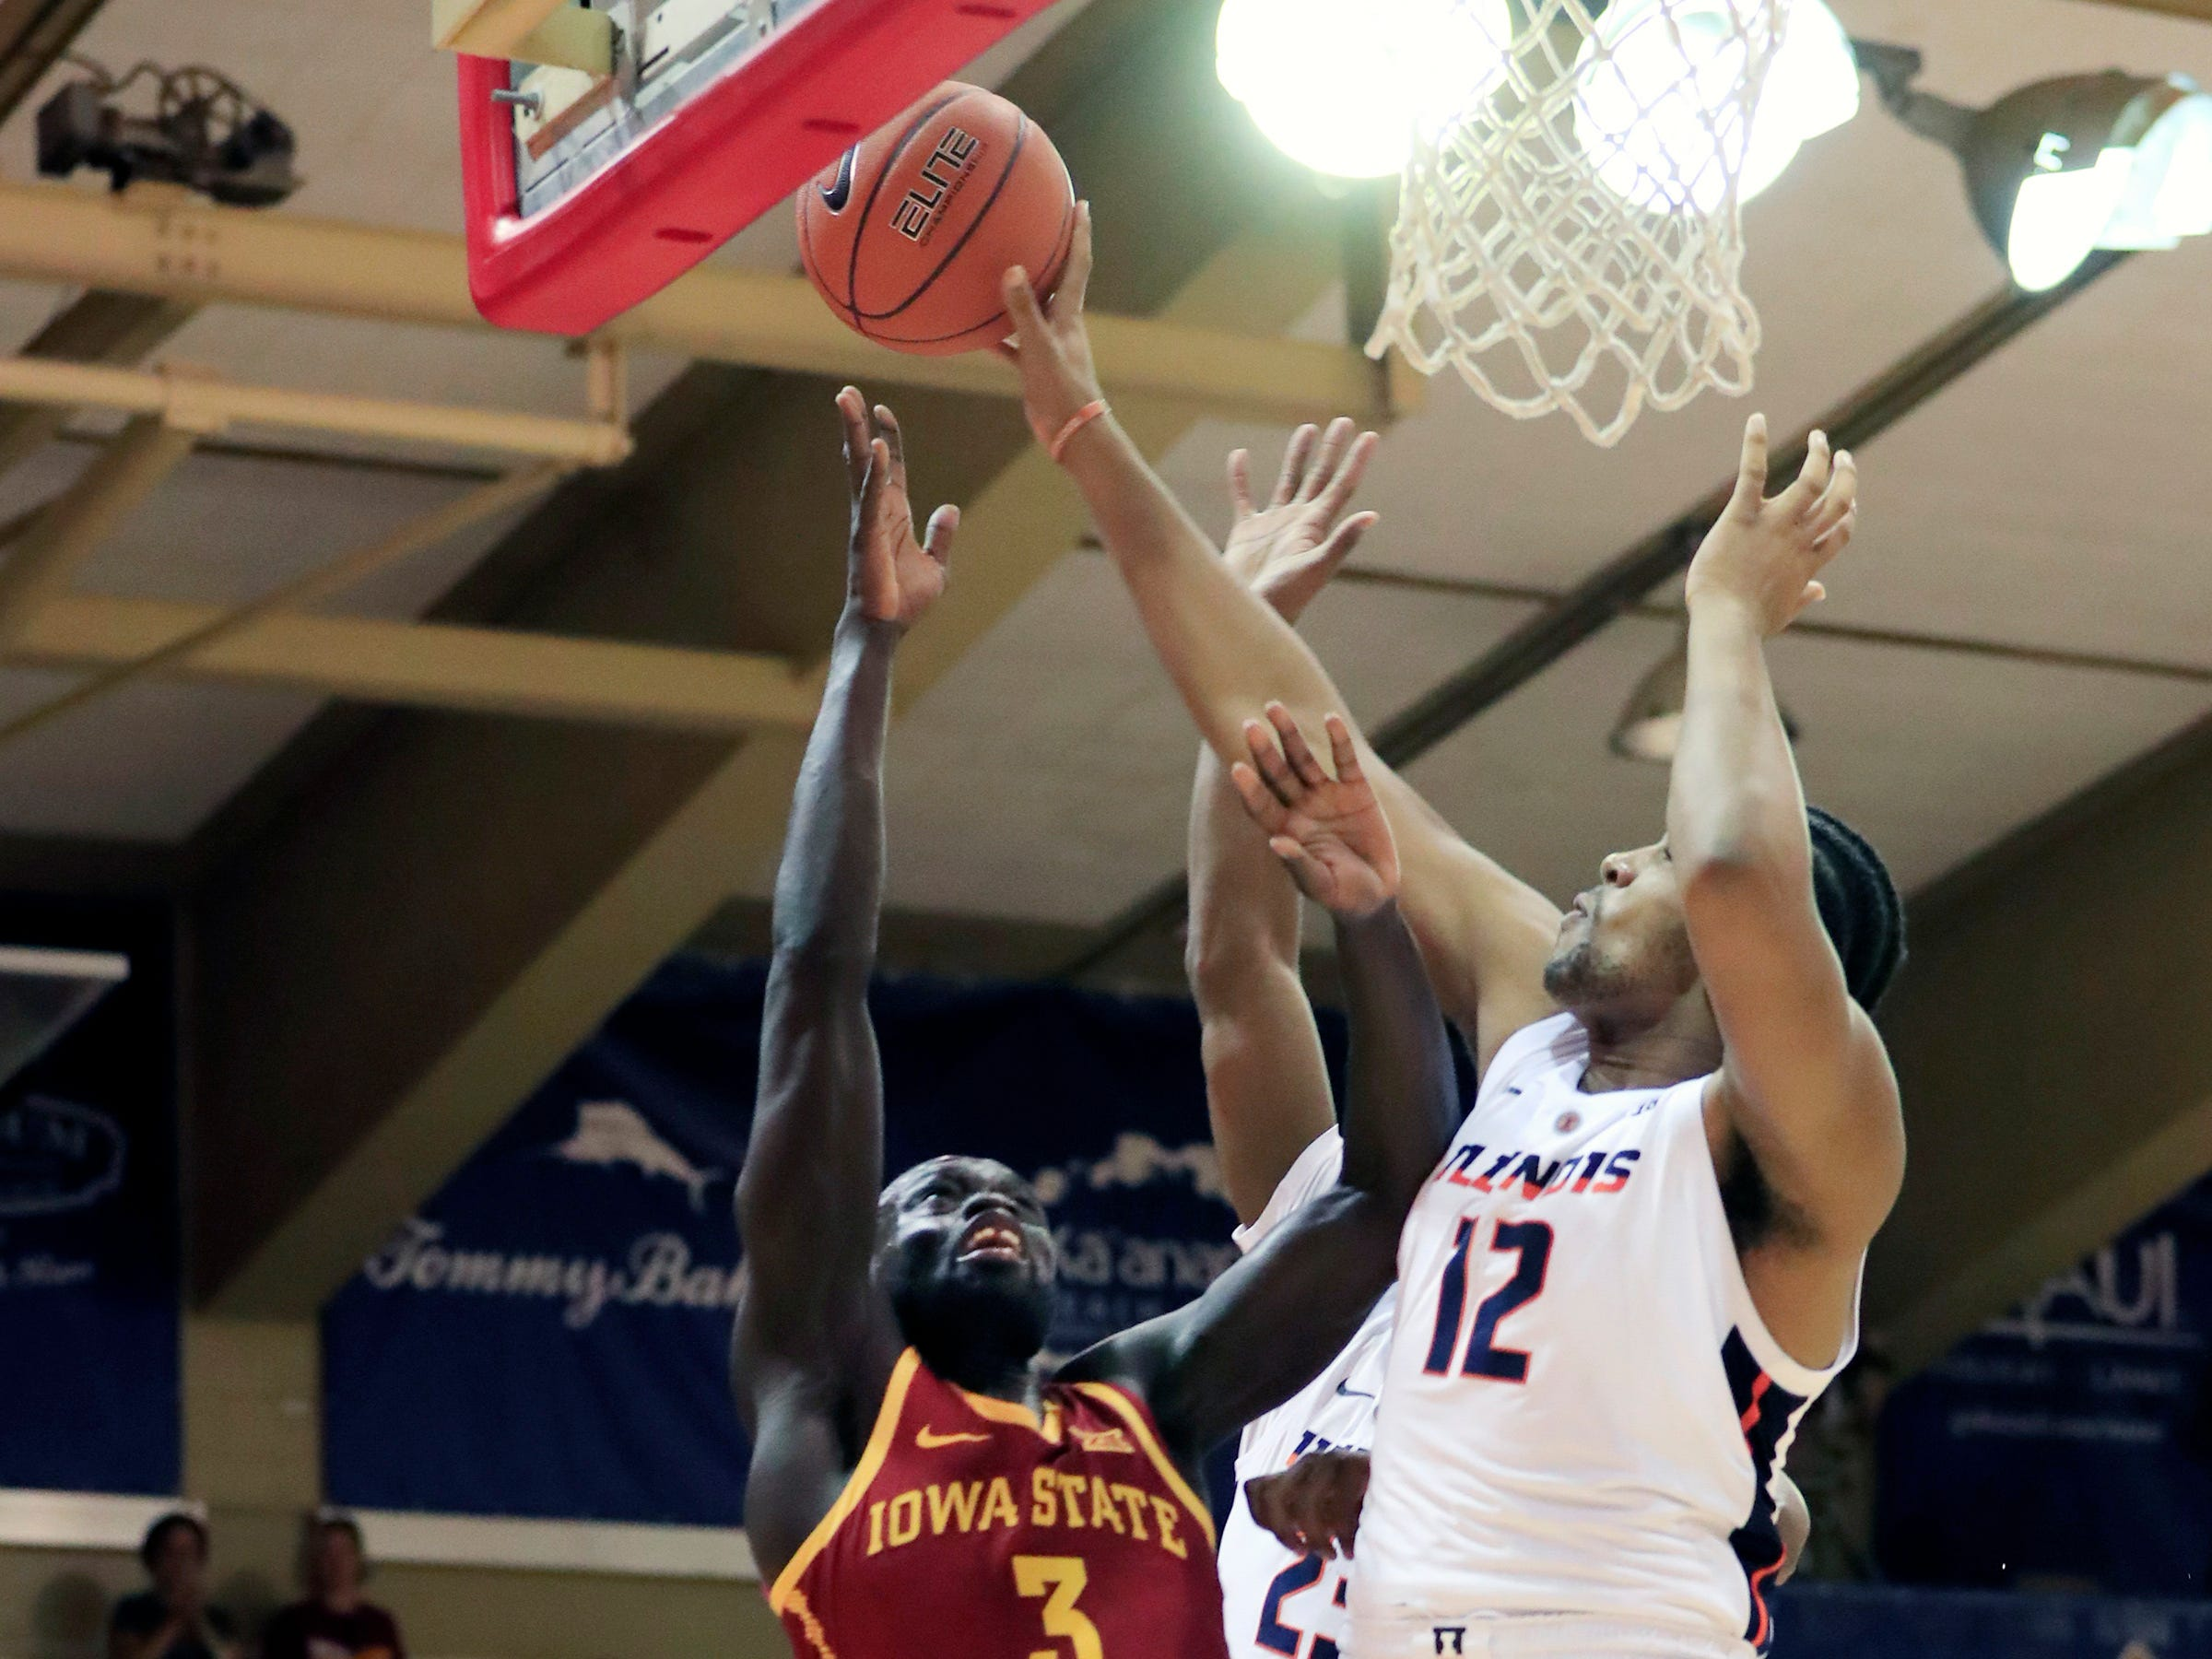 Illinois center Adonis De La Rosa (12) blocks a shot from Iowa State guard Marial Shayok (3) during the first half of an NCAA college basketball game at the Maui Invitational, Tuesday, Nov. 20, 2018, in Lahaina, Hawaii. (AP Photo/Marco Garcia)